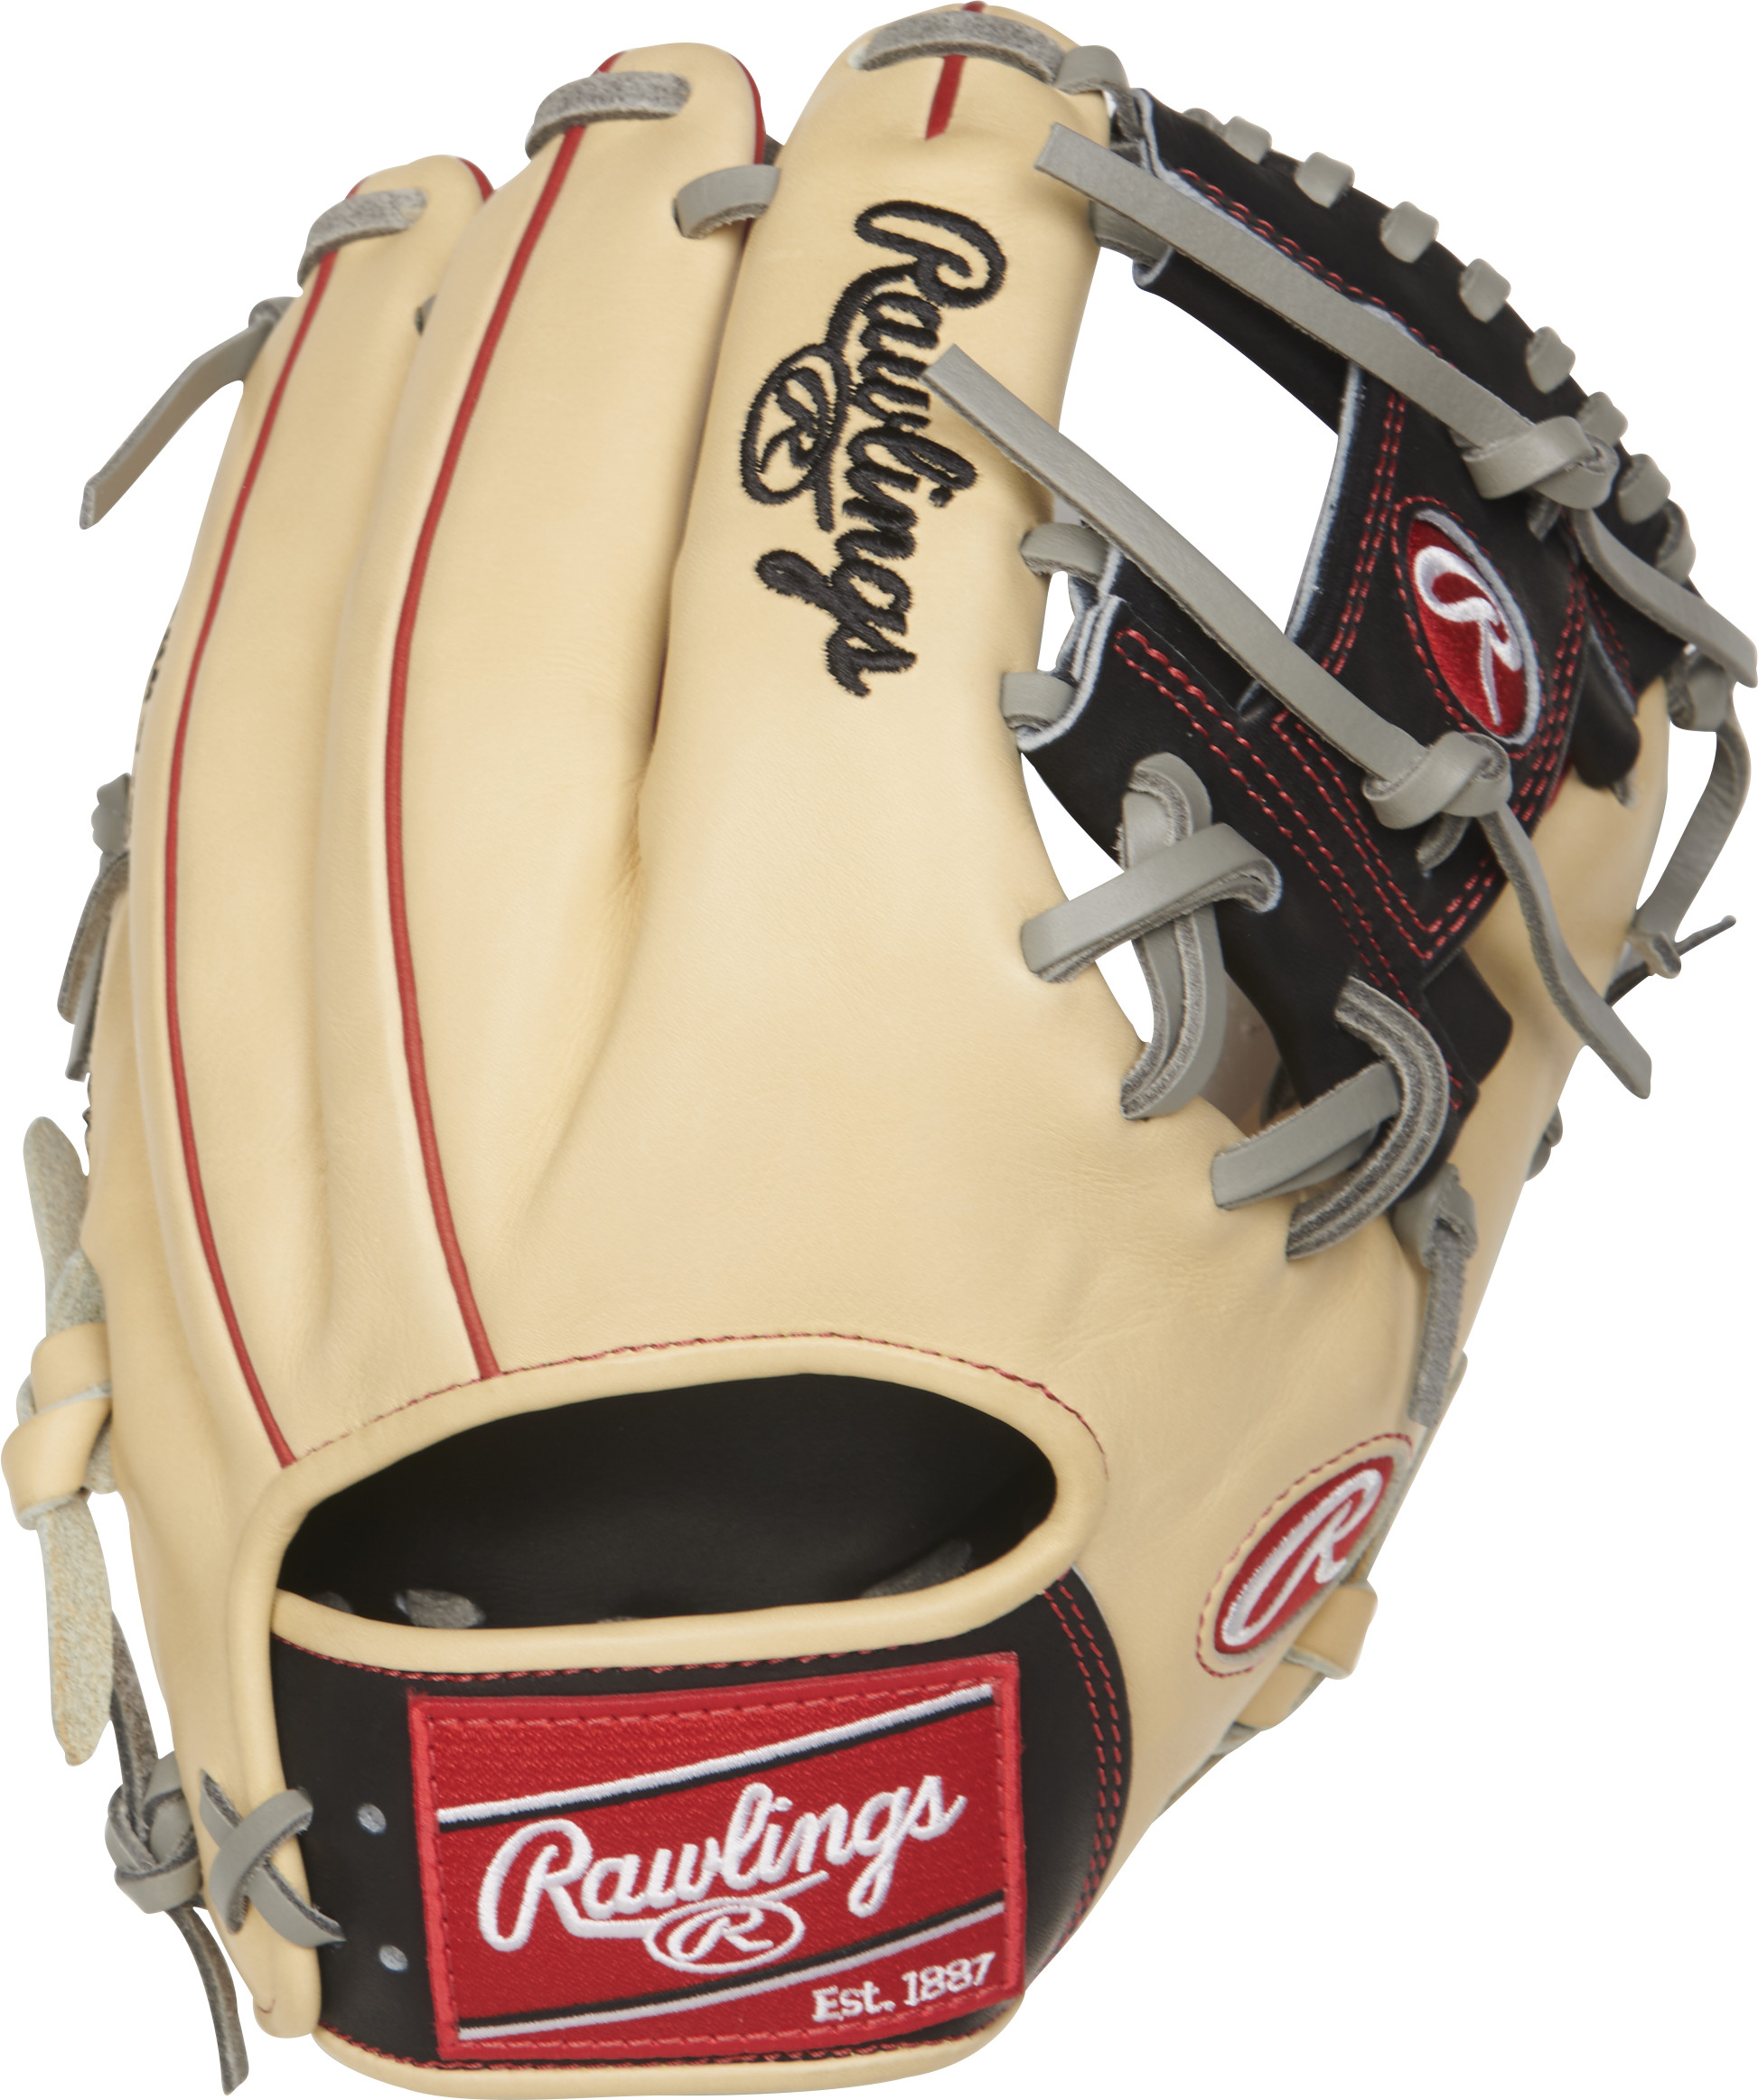 http://www.bestbatdeals.com/images/gloves/rawlings/PRO204-2CBG-2.jpg